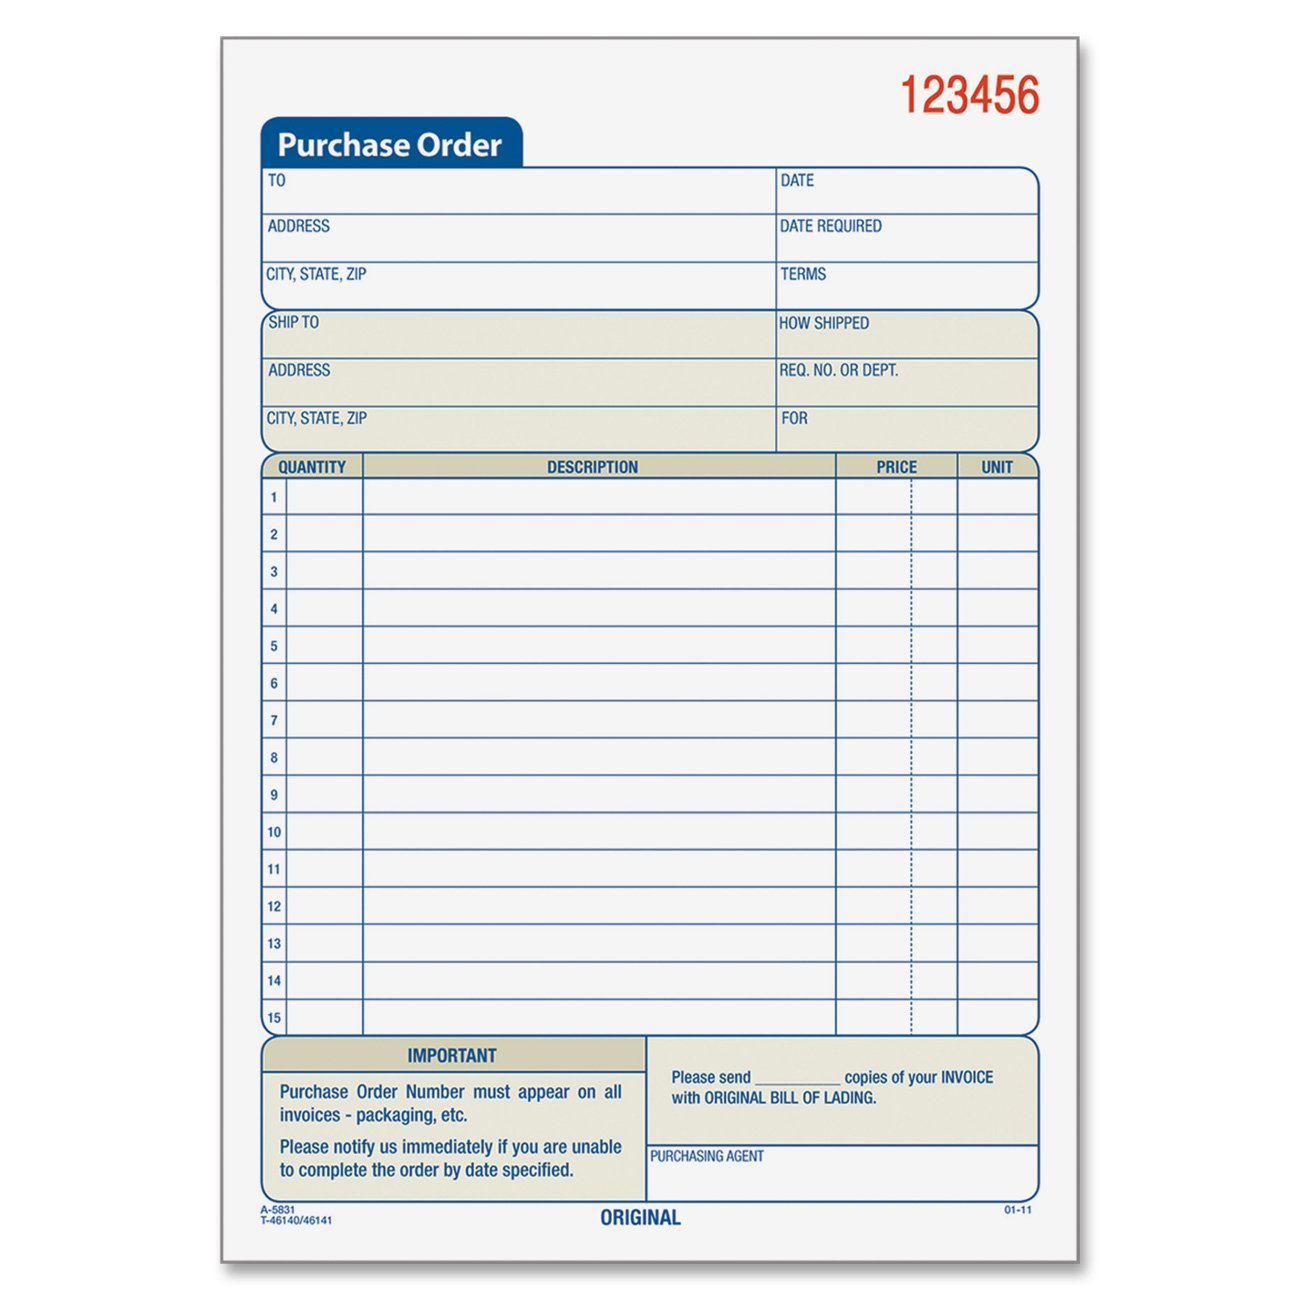 Amazon.com : Adams Purchase Order Book, 5.56 X 8.44 Inch, 3 Part,  Carbonless, 50 Sets, White, Canary, Pink (TC5831) : Blank Purchase Order  Forms : Office ...  Local Purchase Order Format